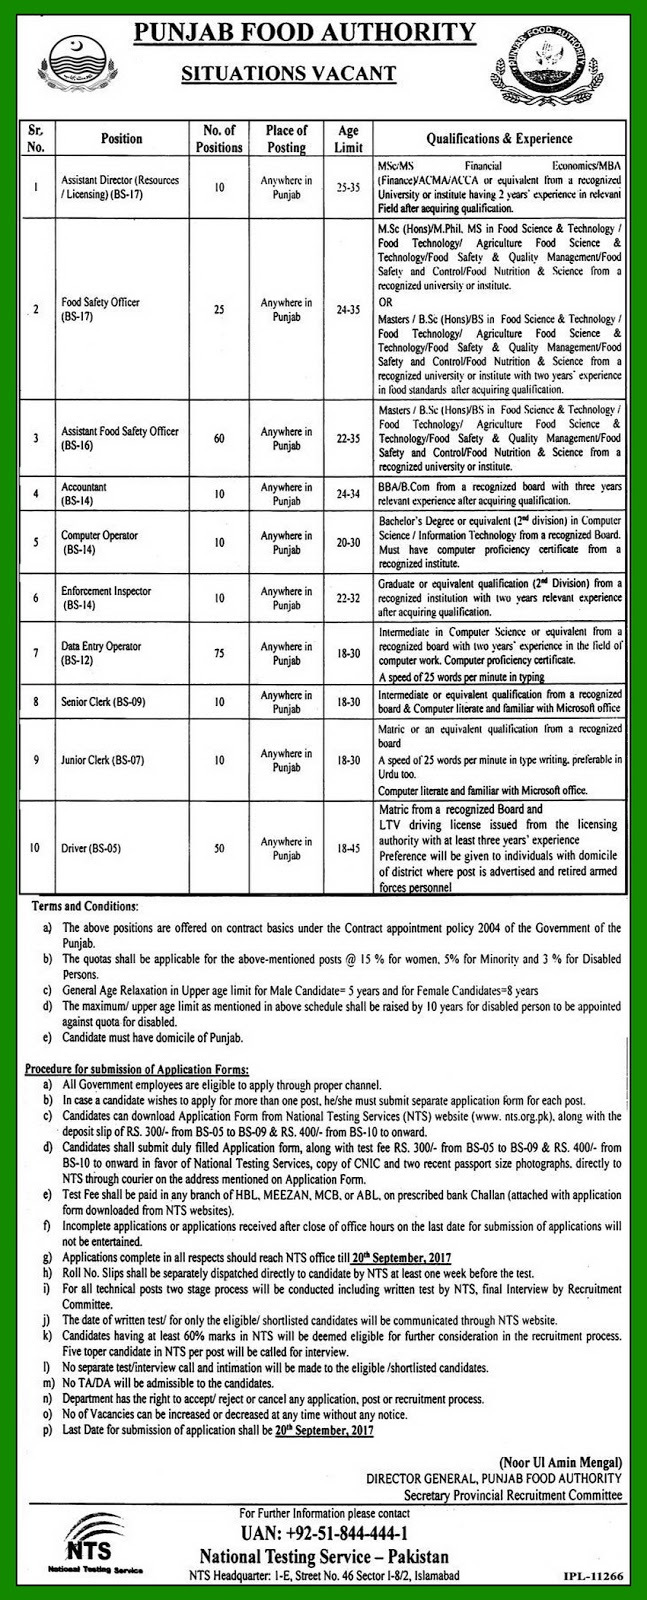 Government Jobs in Punjab Food Authority